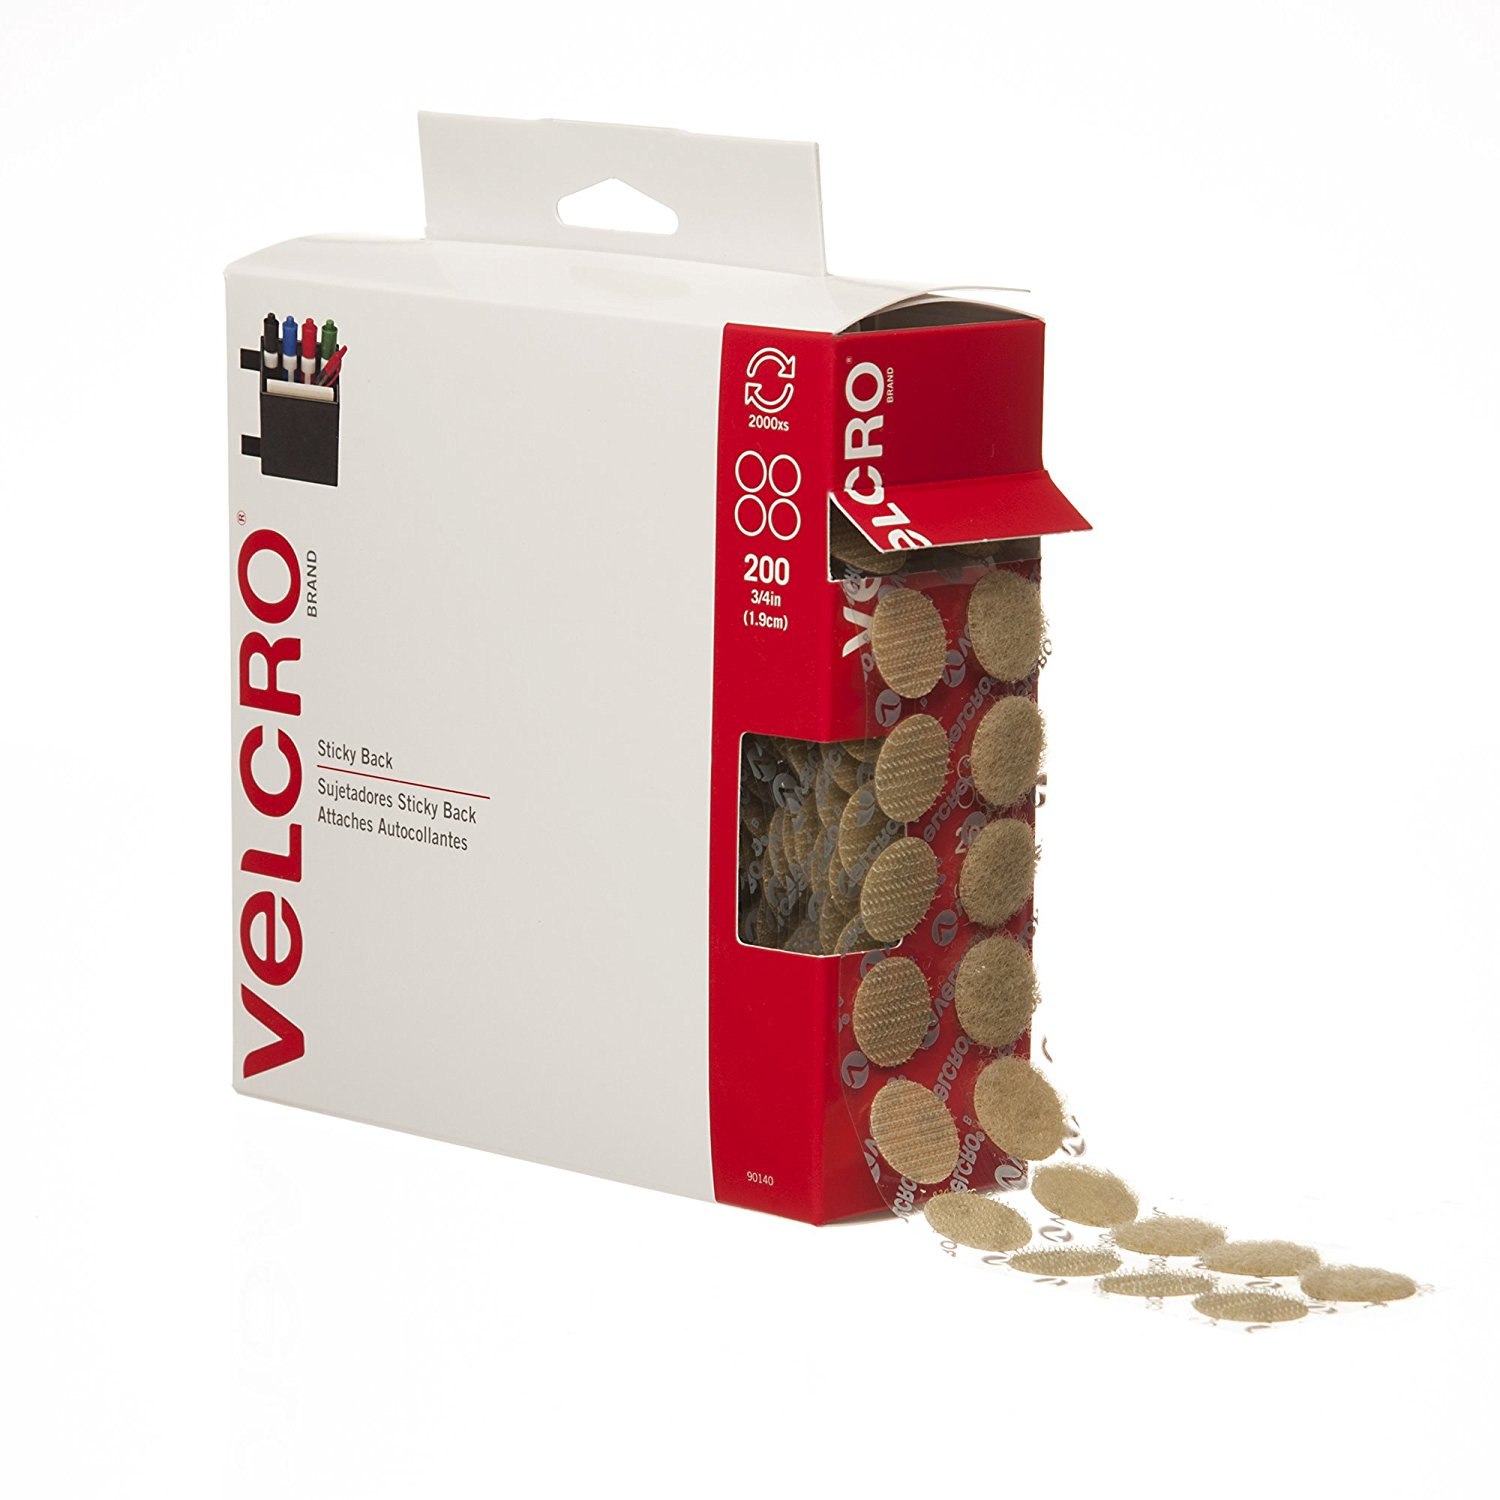 VELCRO Brand - Sticky Back - 3/4' Coins, 200 Sets (1)